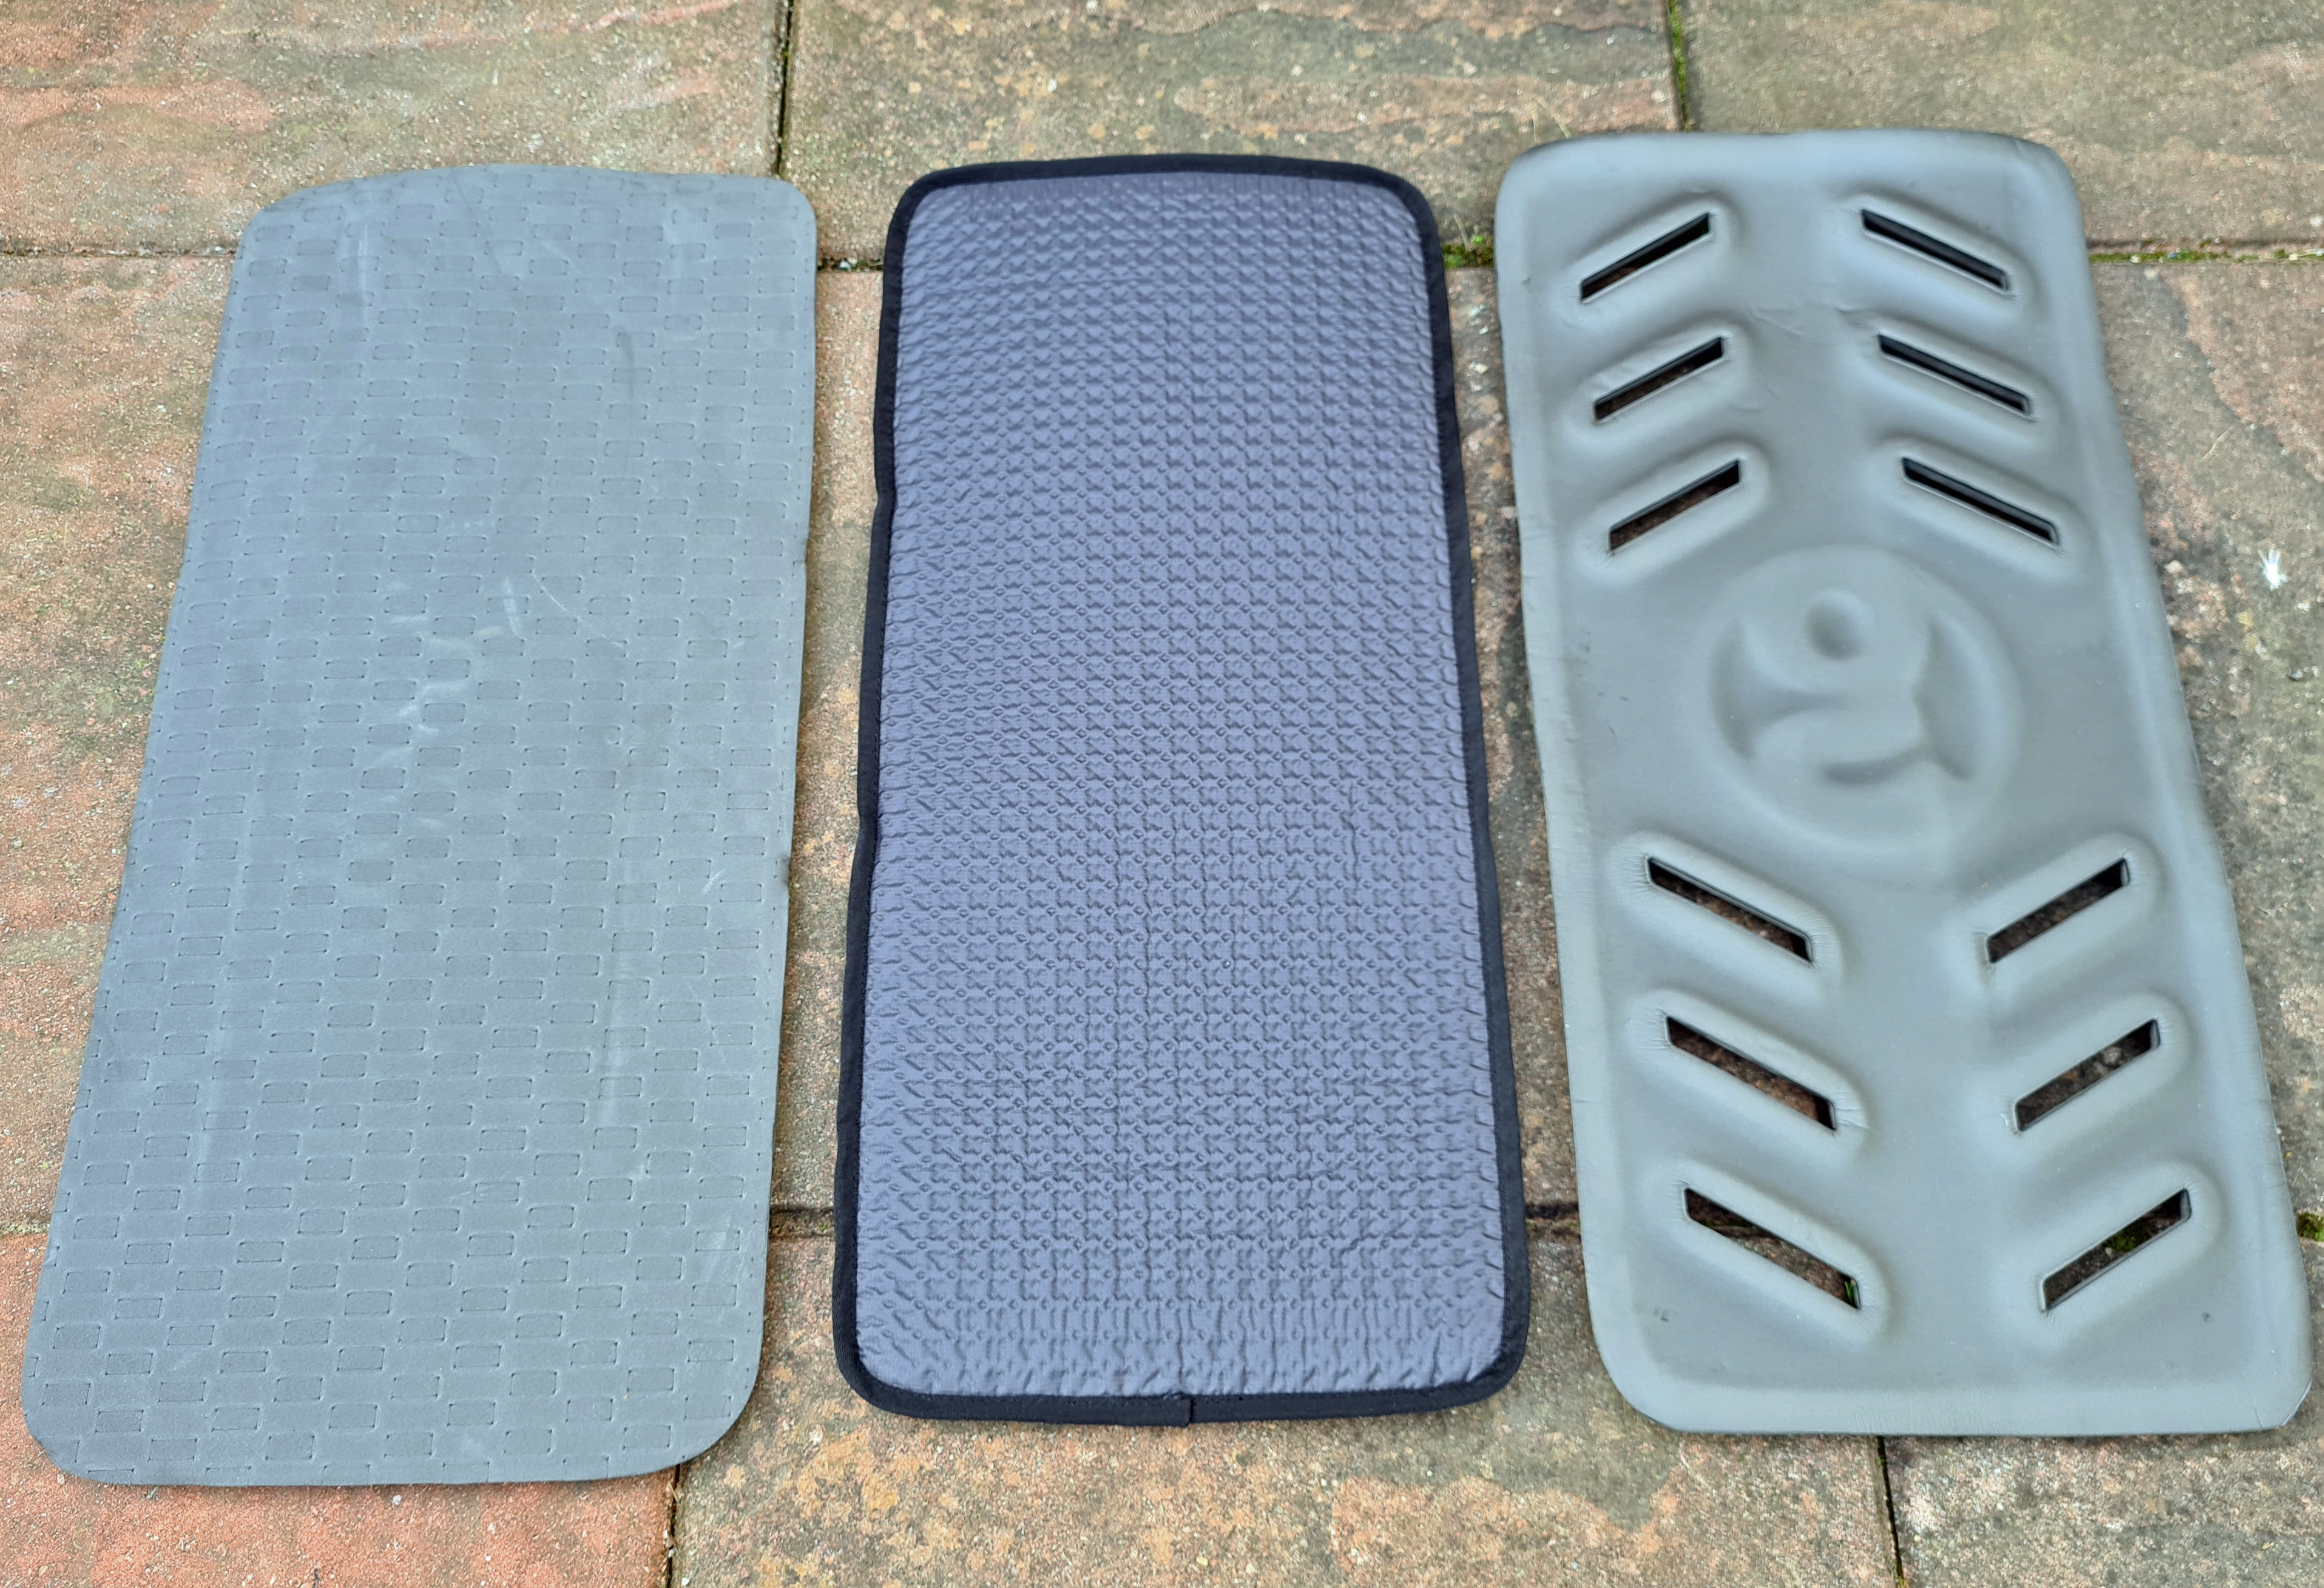 Reverse of three Gossamer Gear sit pads compared